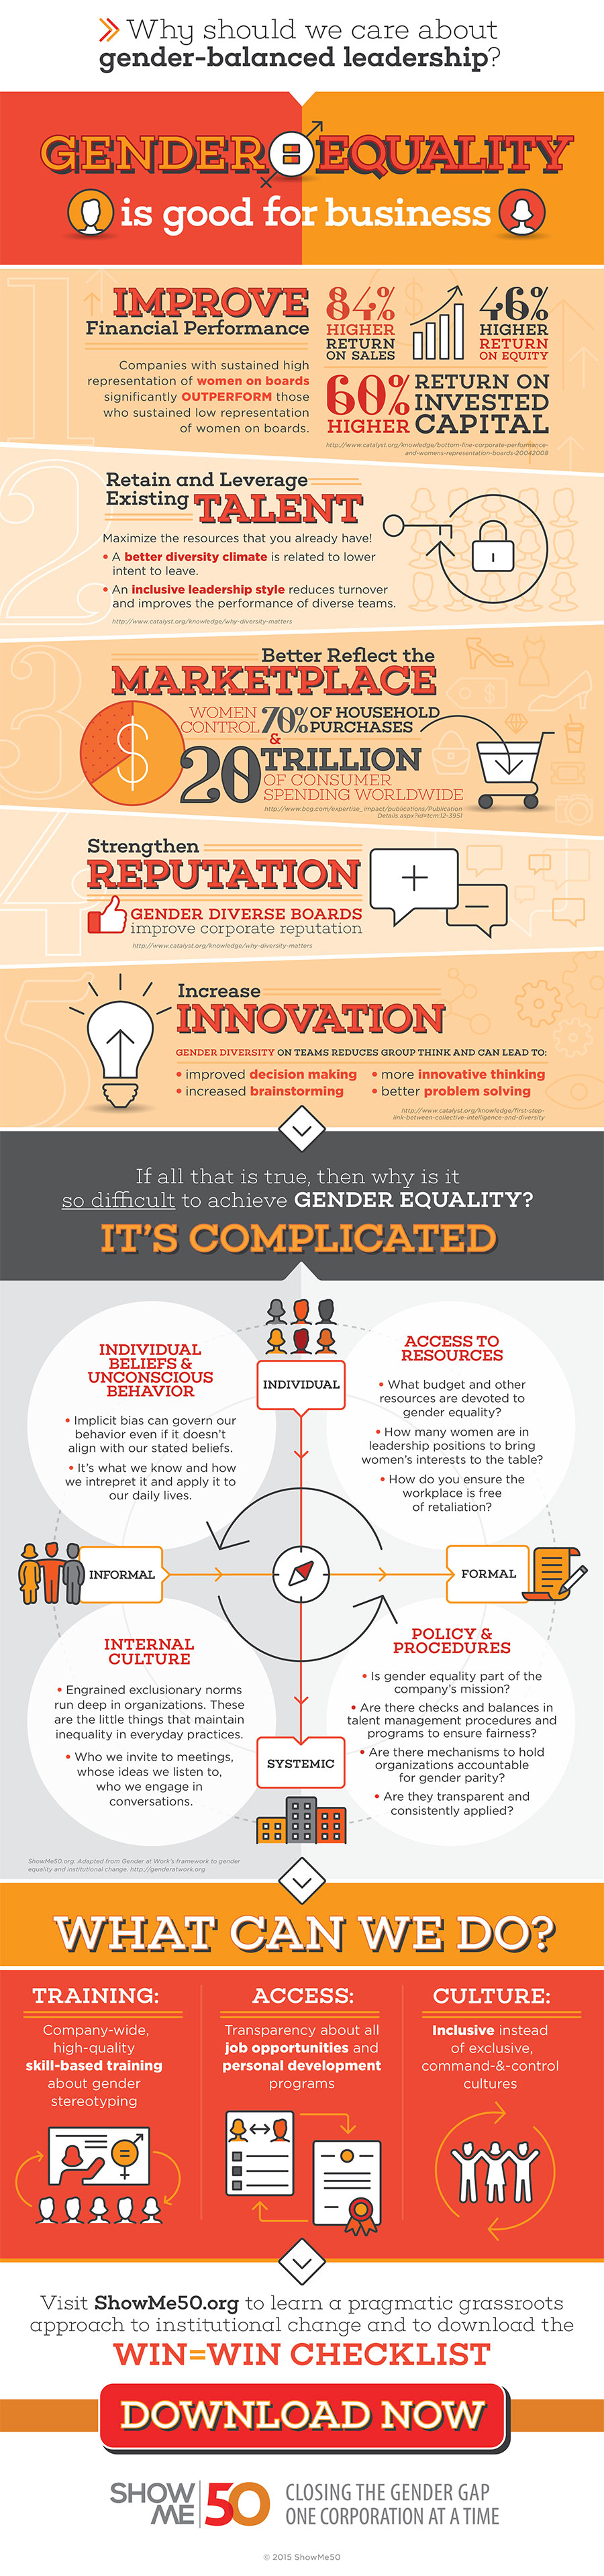 Why Should We Care About Gender-Balanced Leadership?